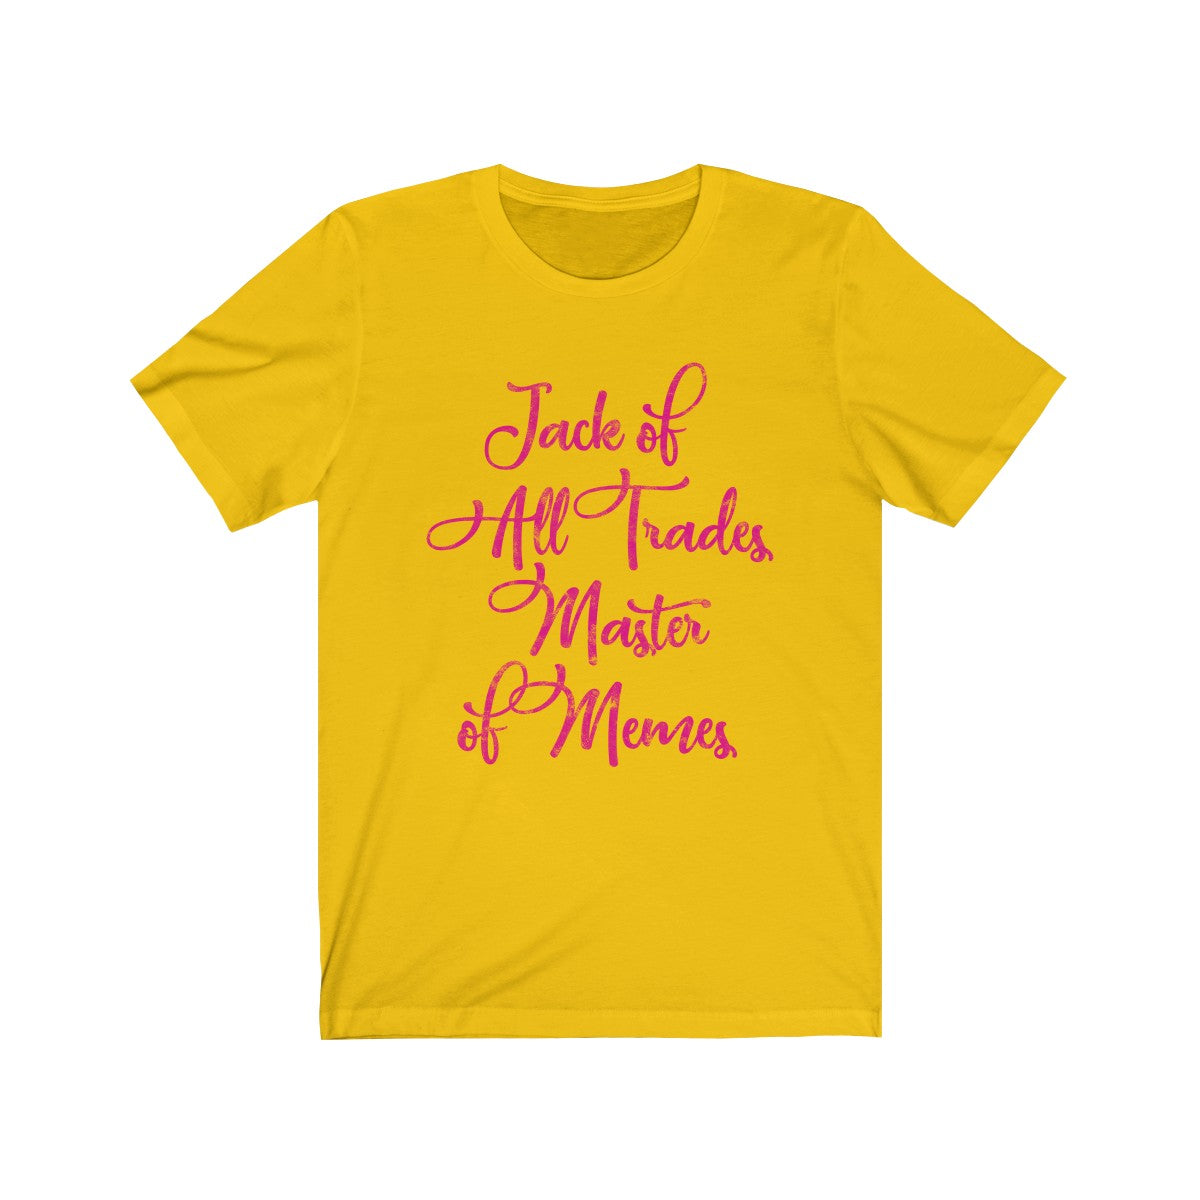 SACRED CLOWNS . Master Of Memes . Magenta Print . Unisex Jersey Short Sleeve Tee